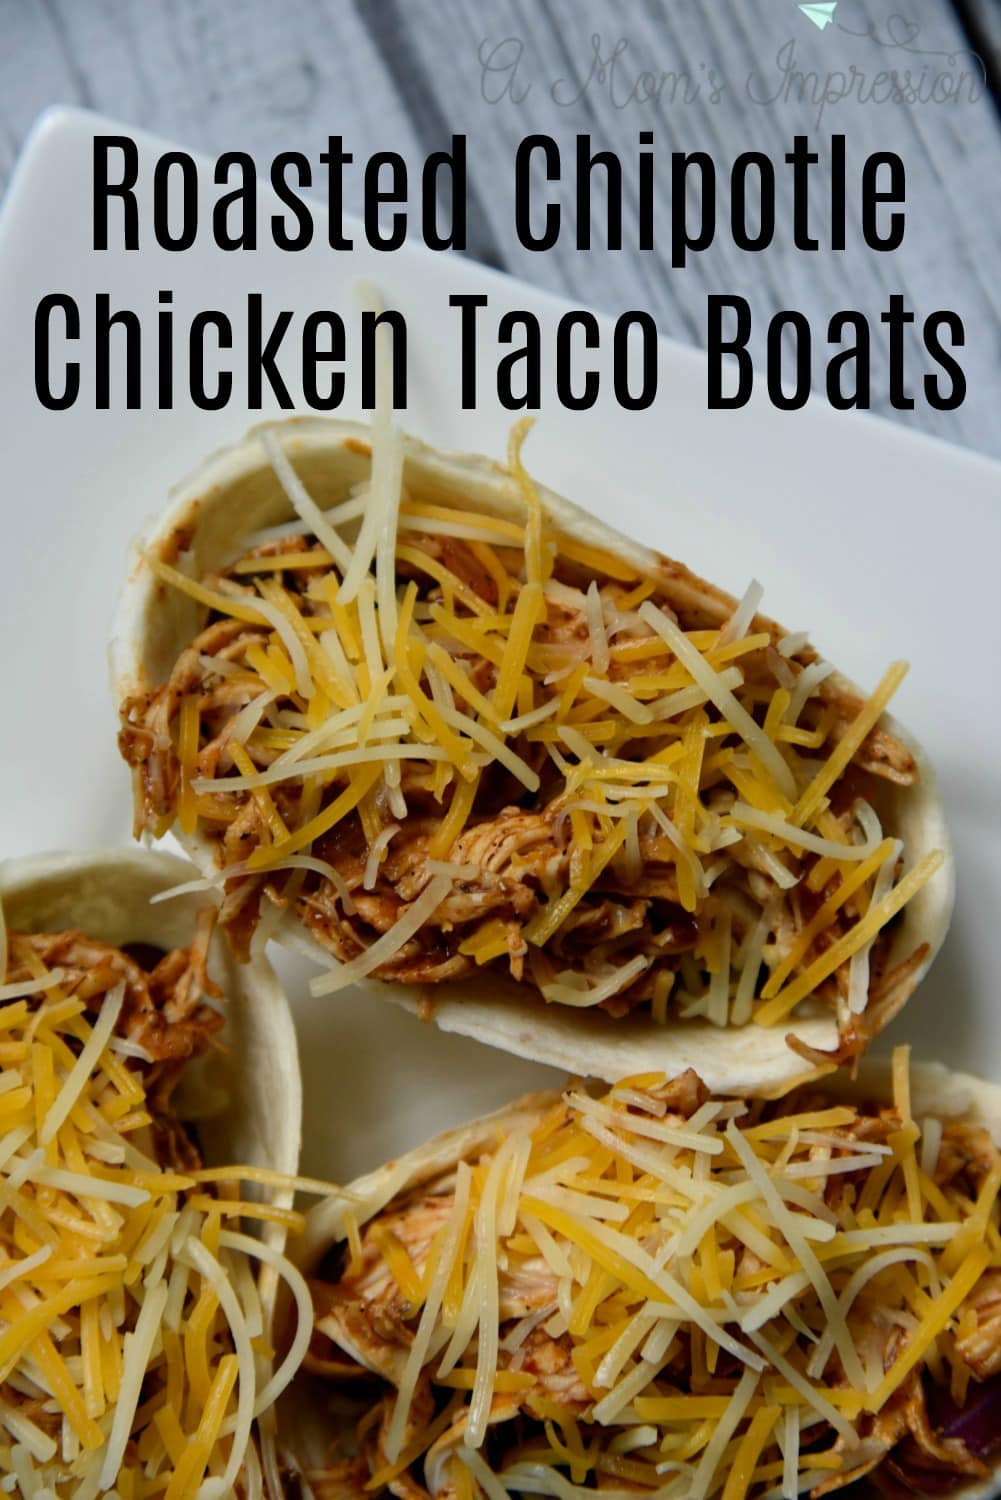 Easy Roasted Chipotle Chicken Taco Boats Recipe